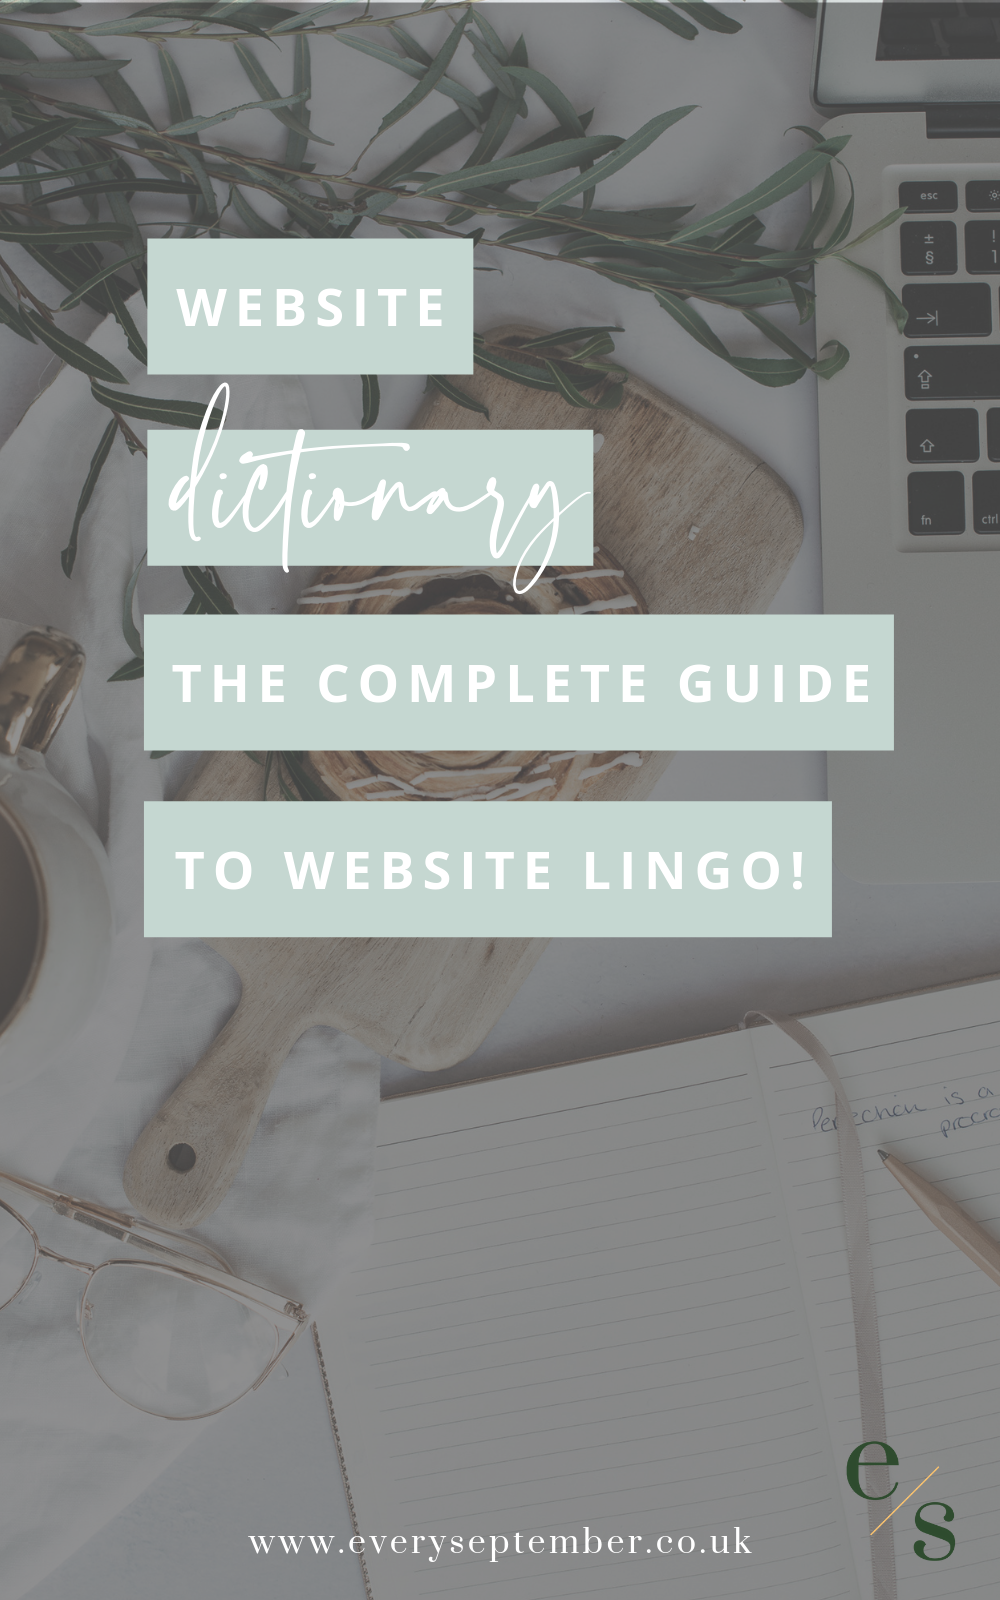 website dictionary - complete guide to website lingo